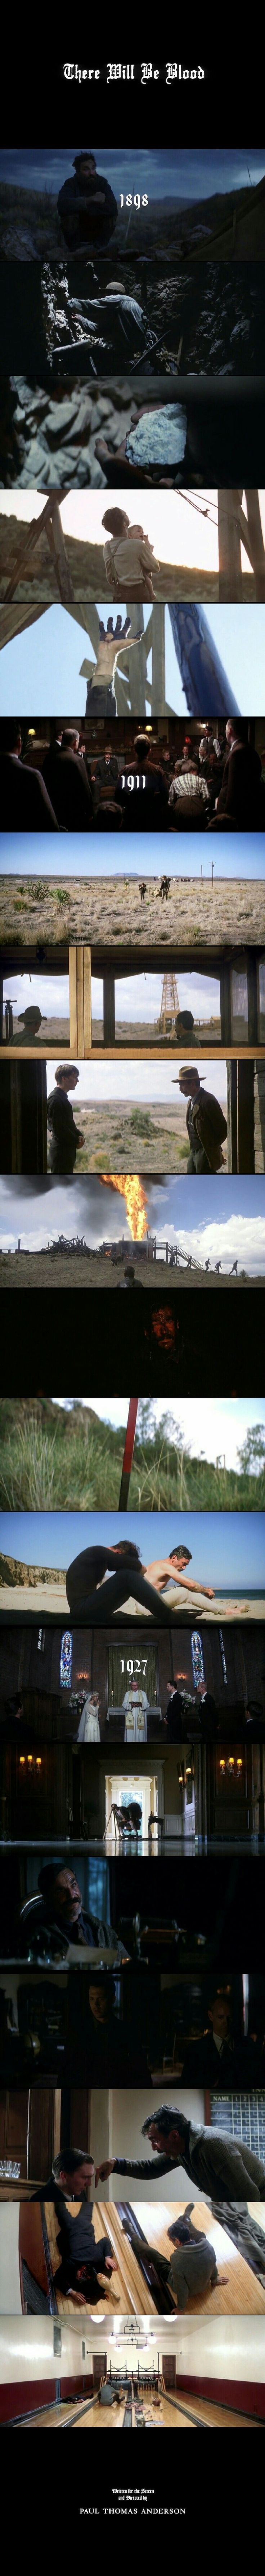 There Will Be Blood (2007) Directed by Paul Thomas Anderson. Cinematography by Robert Elswit. #Cinematography